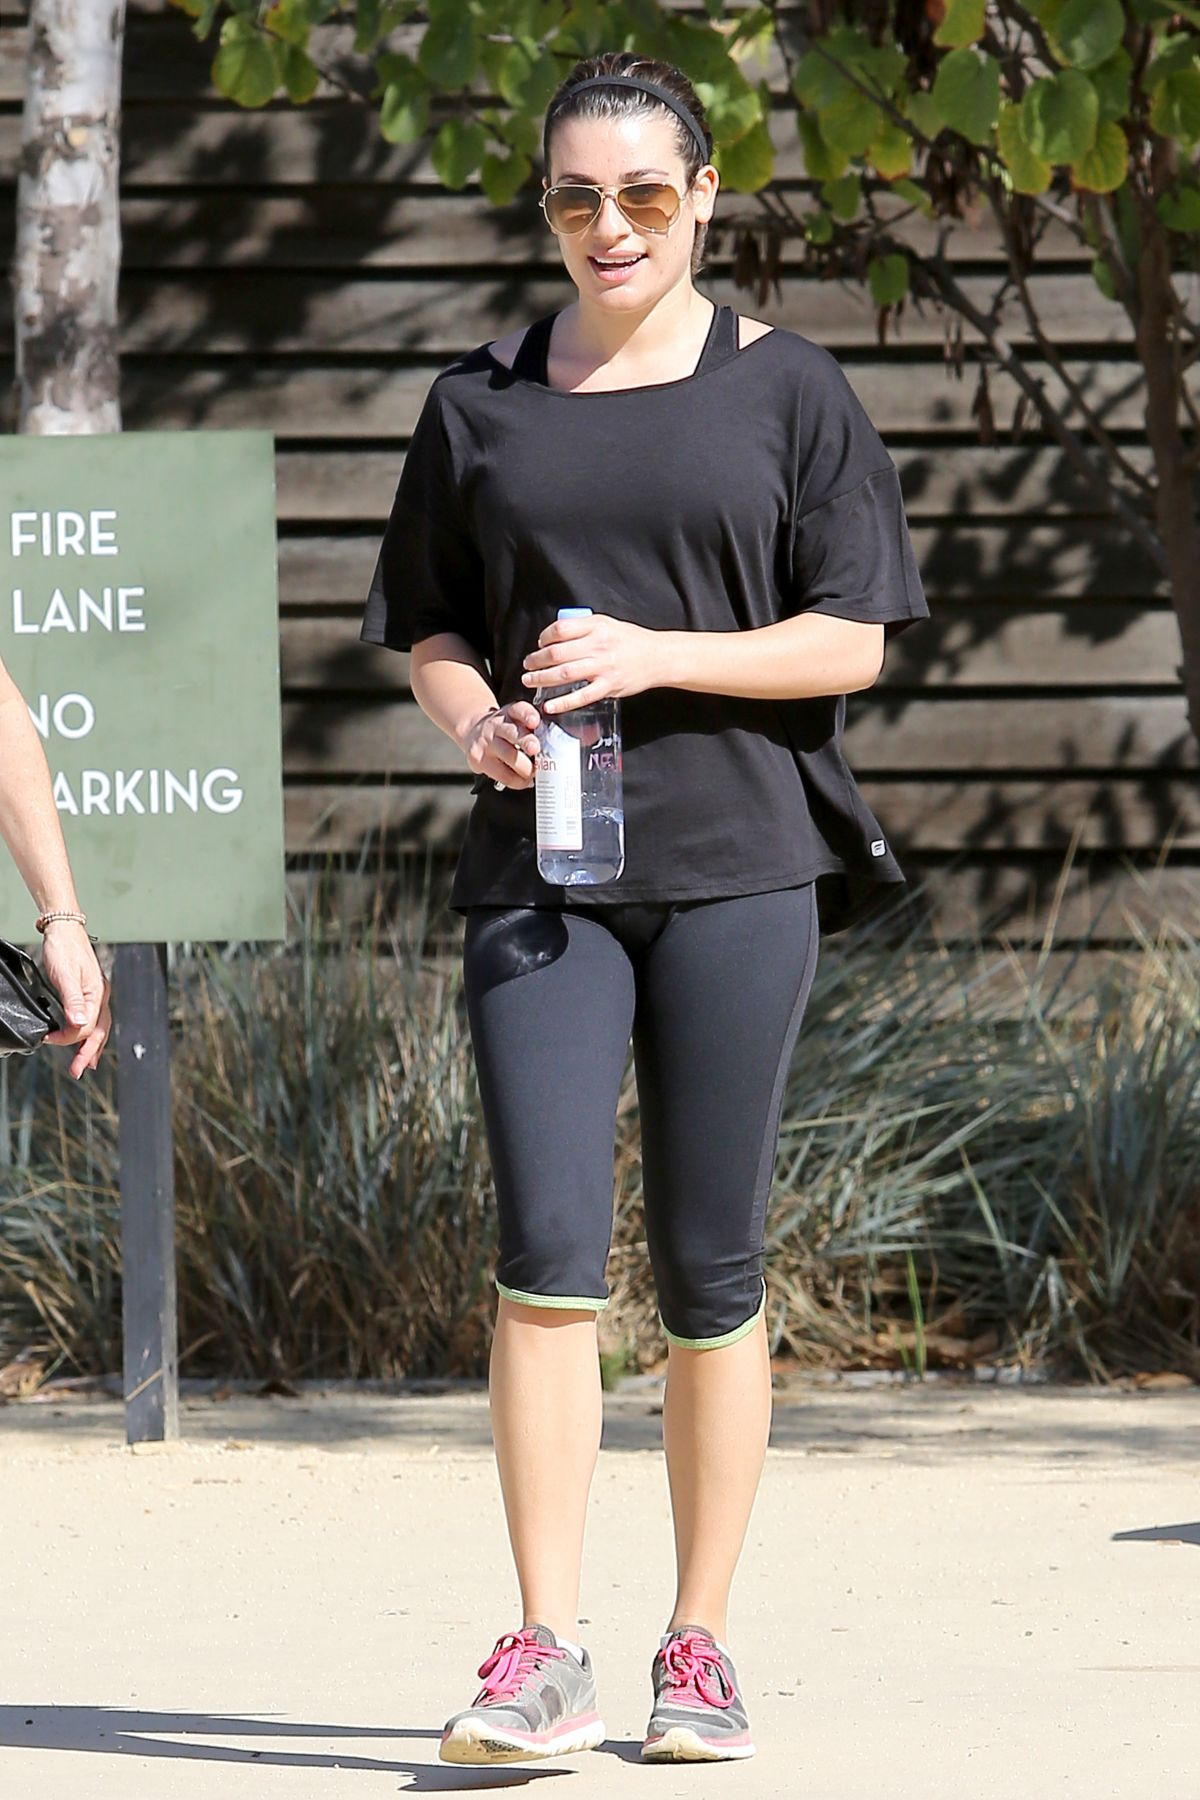 326cd54340 LE MICHELE in Leggings Out Hiking in Los Angeles - HawtCelebs